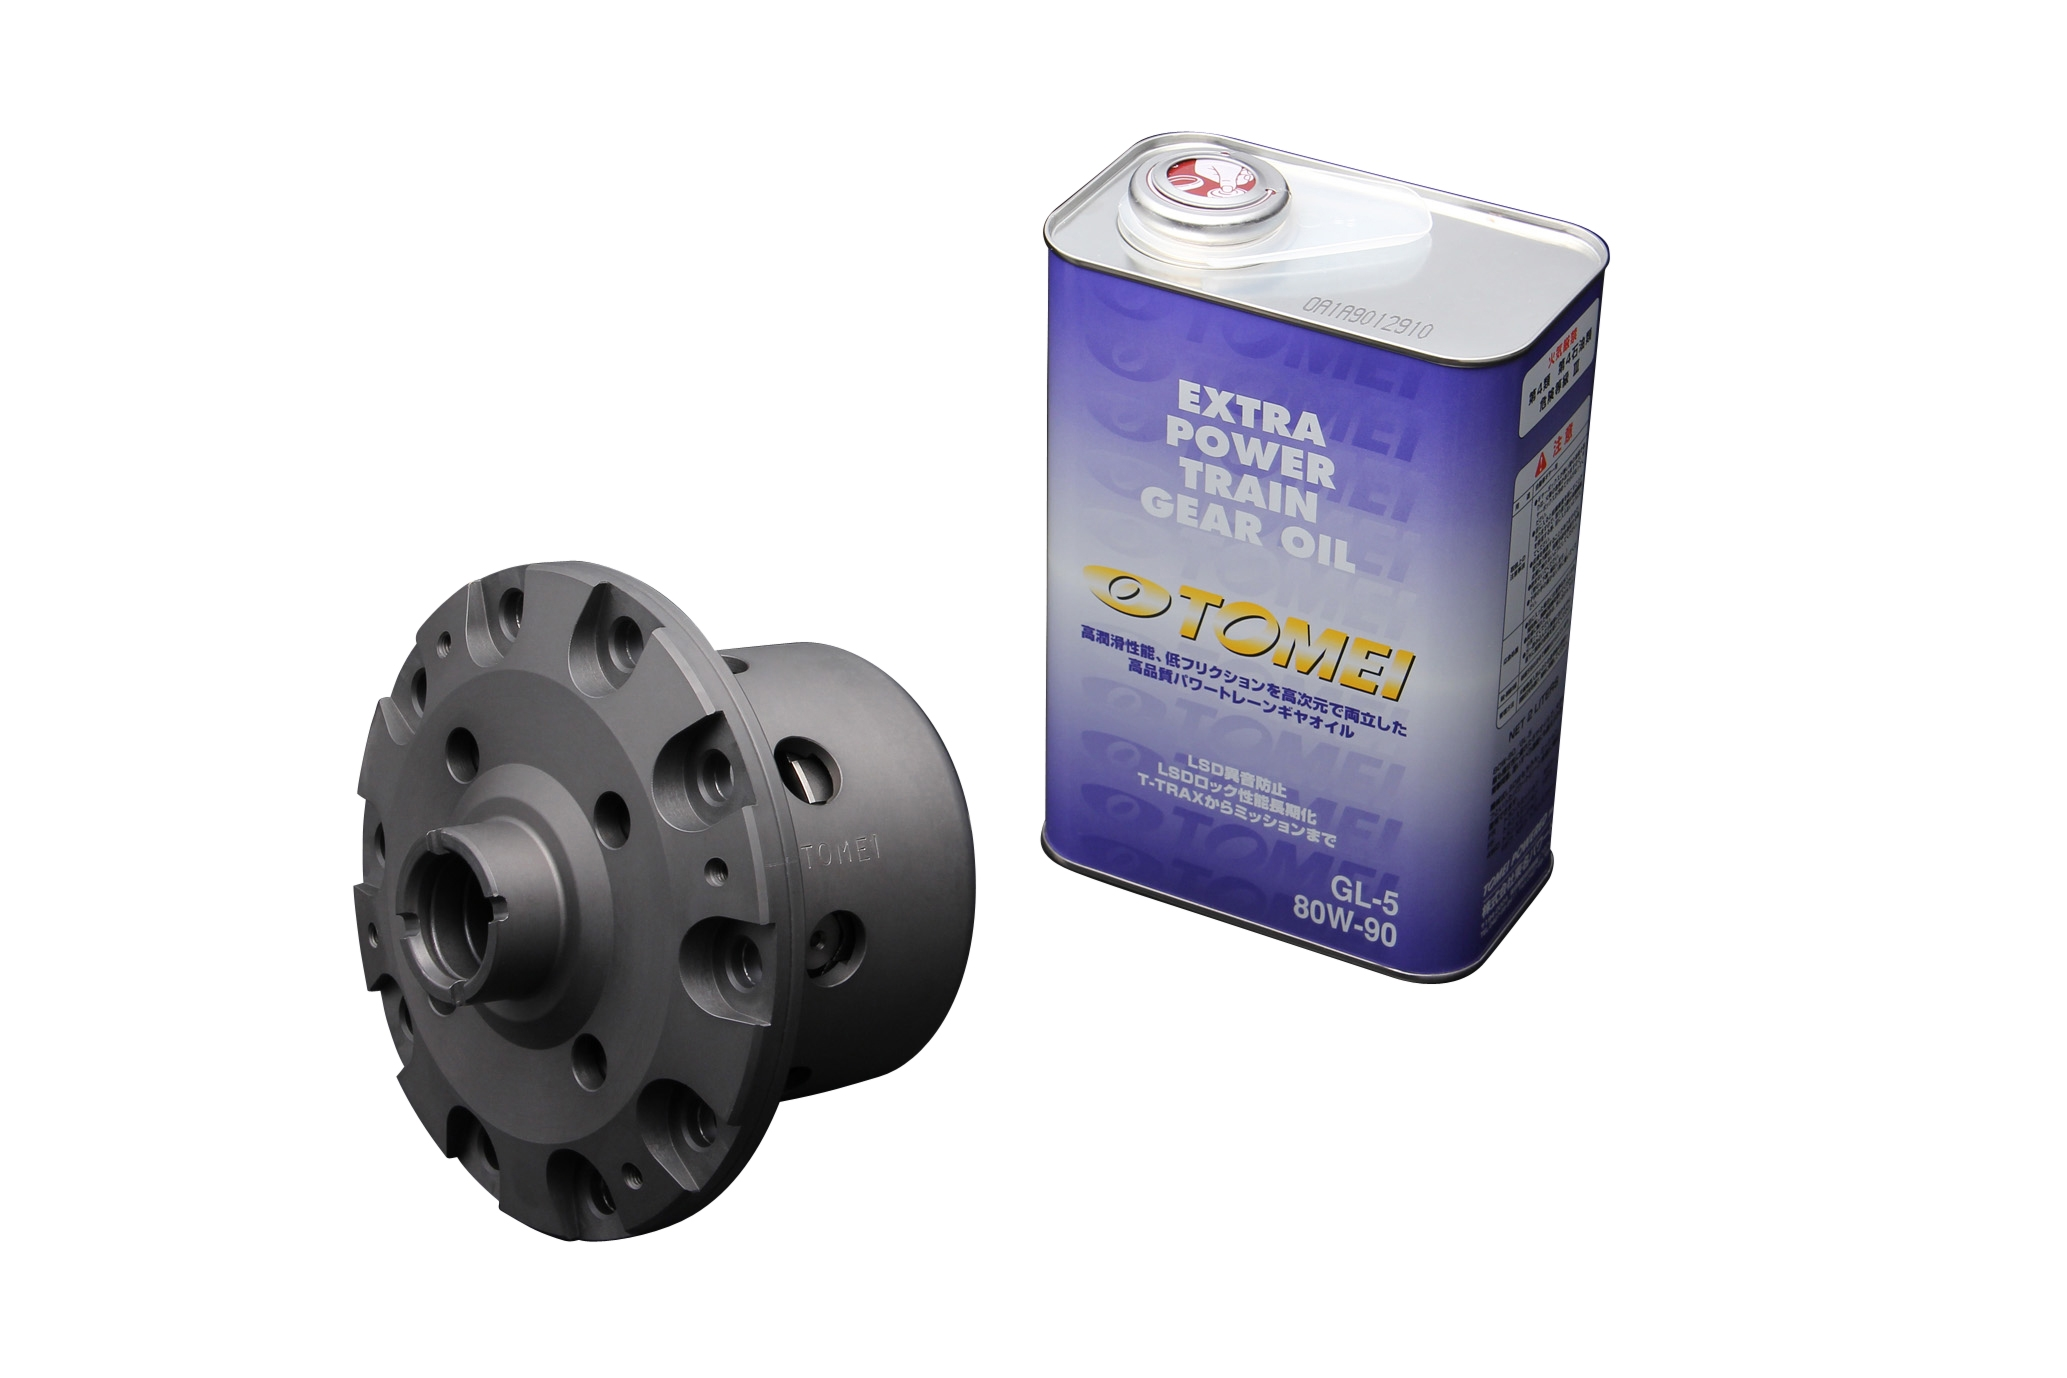 Tomei KA2 2-Way LSD Kit Technical Trax Advance For Hyundai Genesis